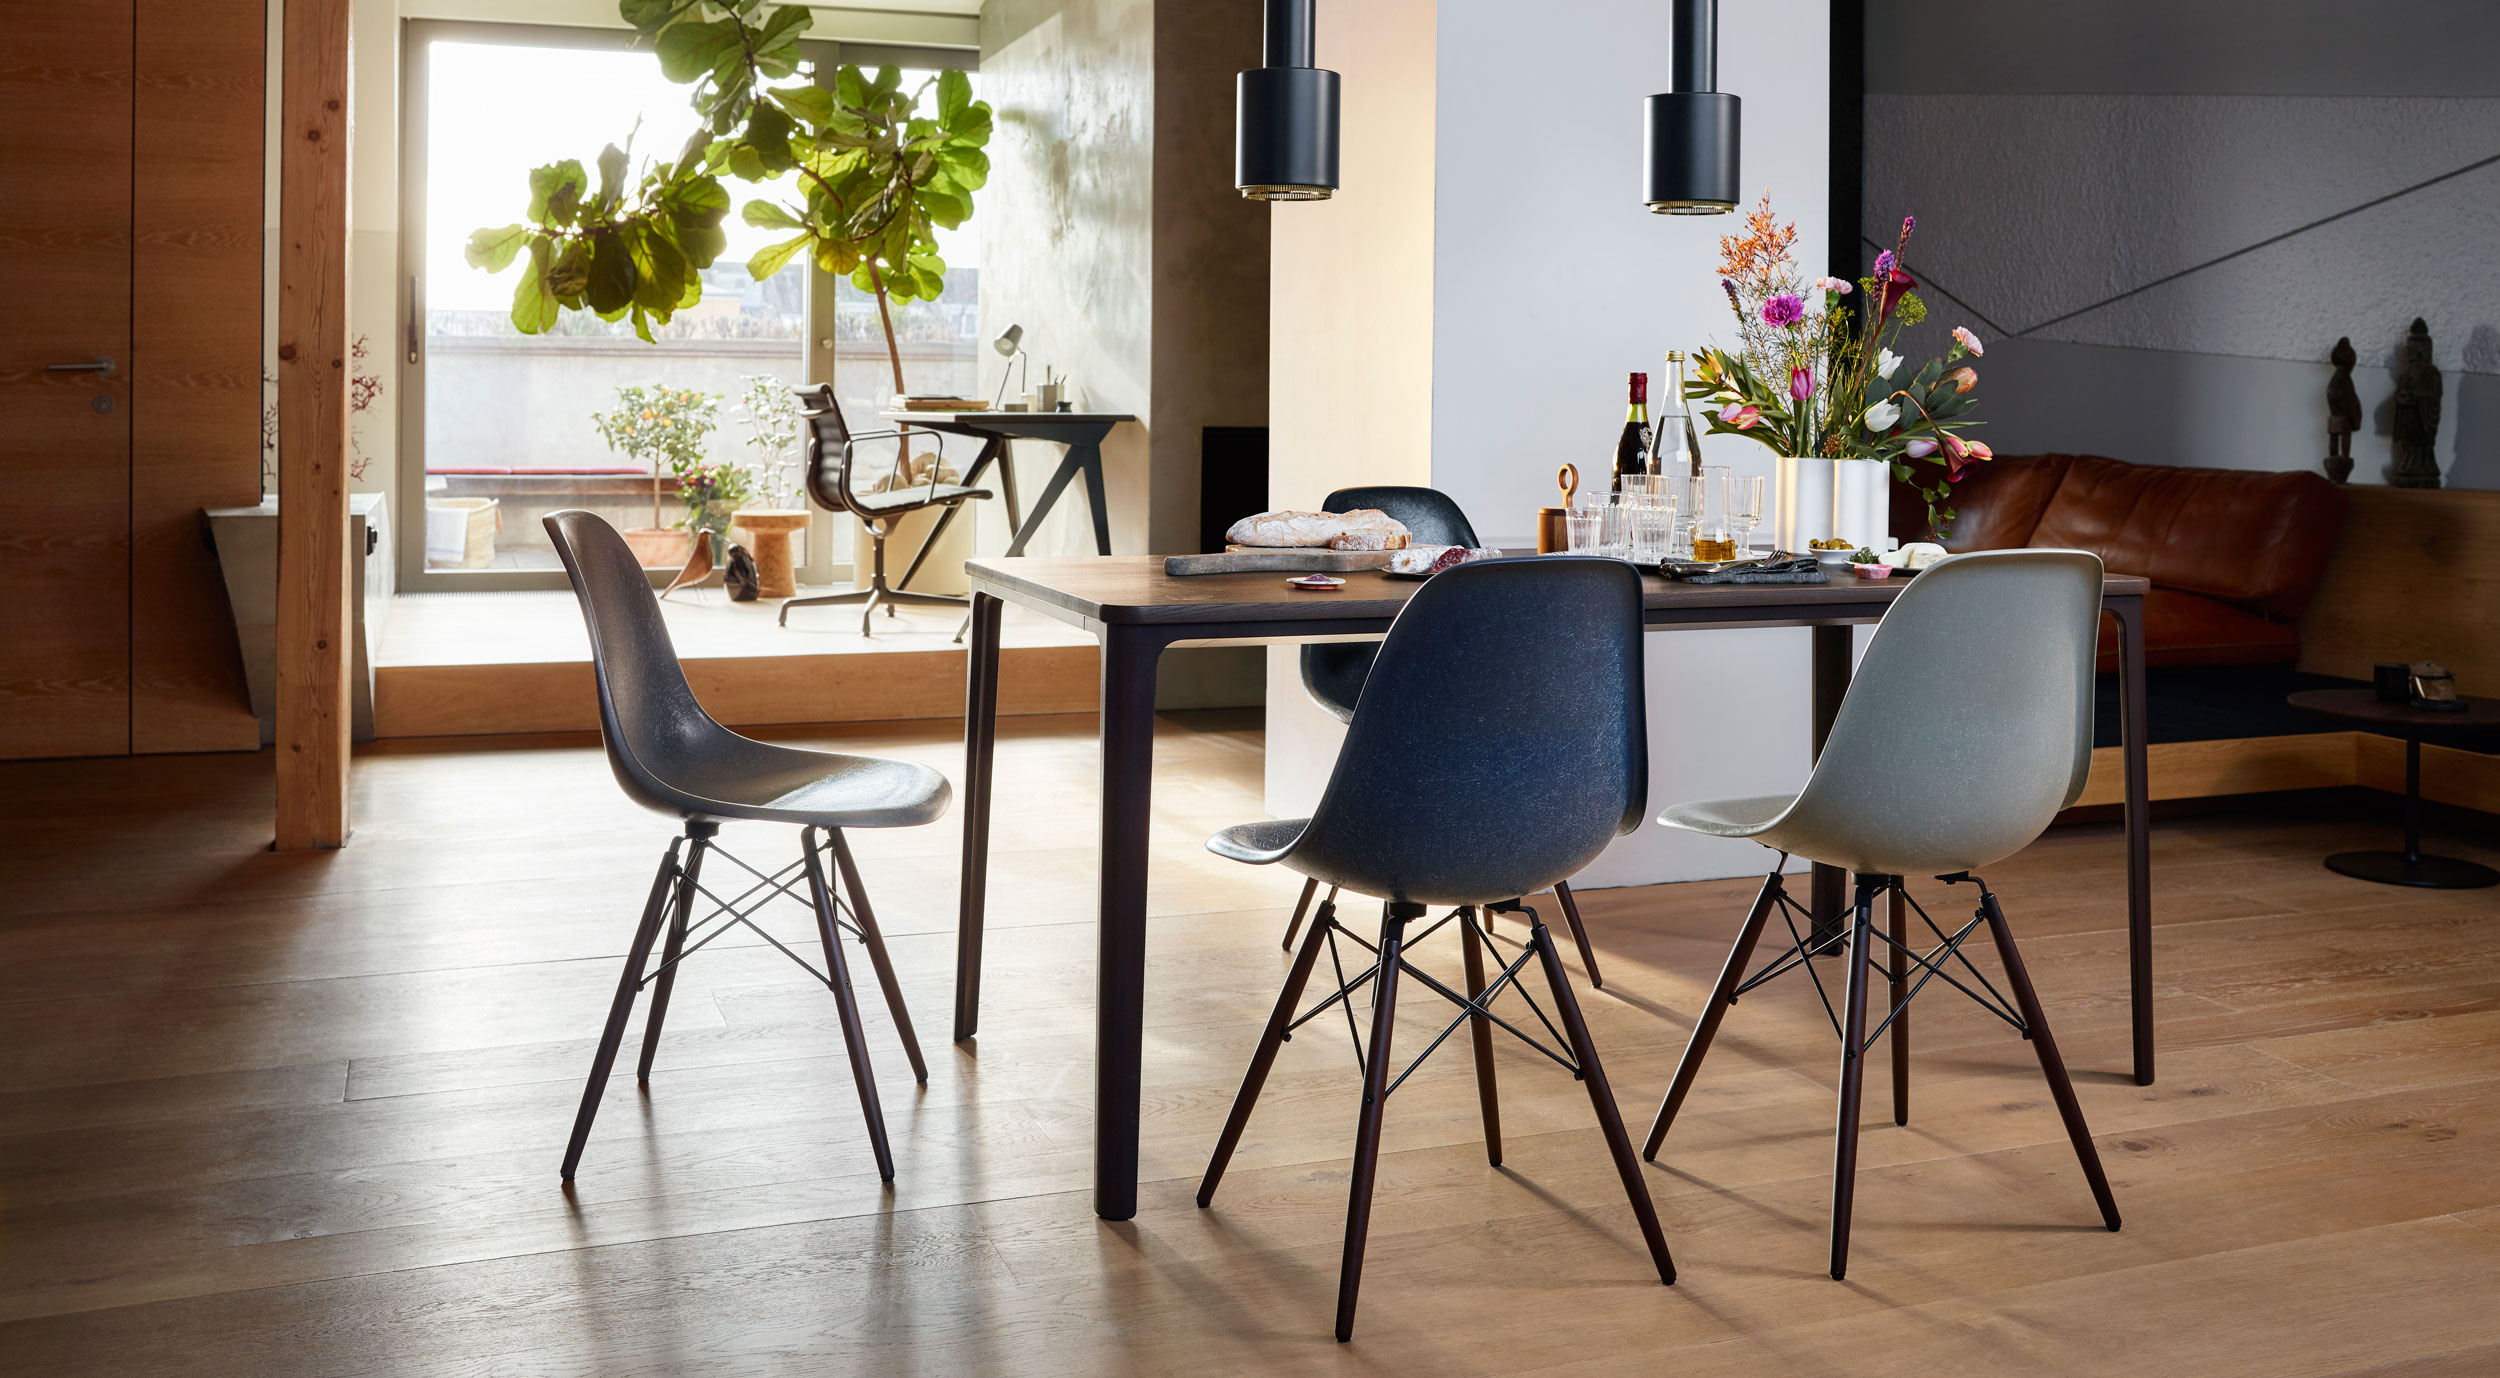 Vitra Eames Fiberglass DSW Chairs & Plate Dining Table